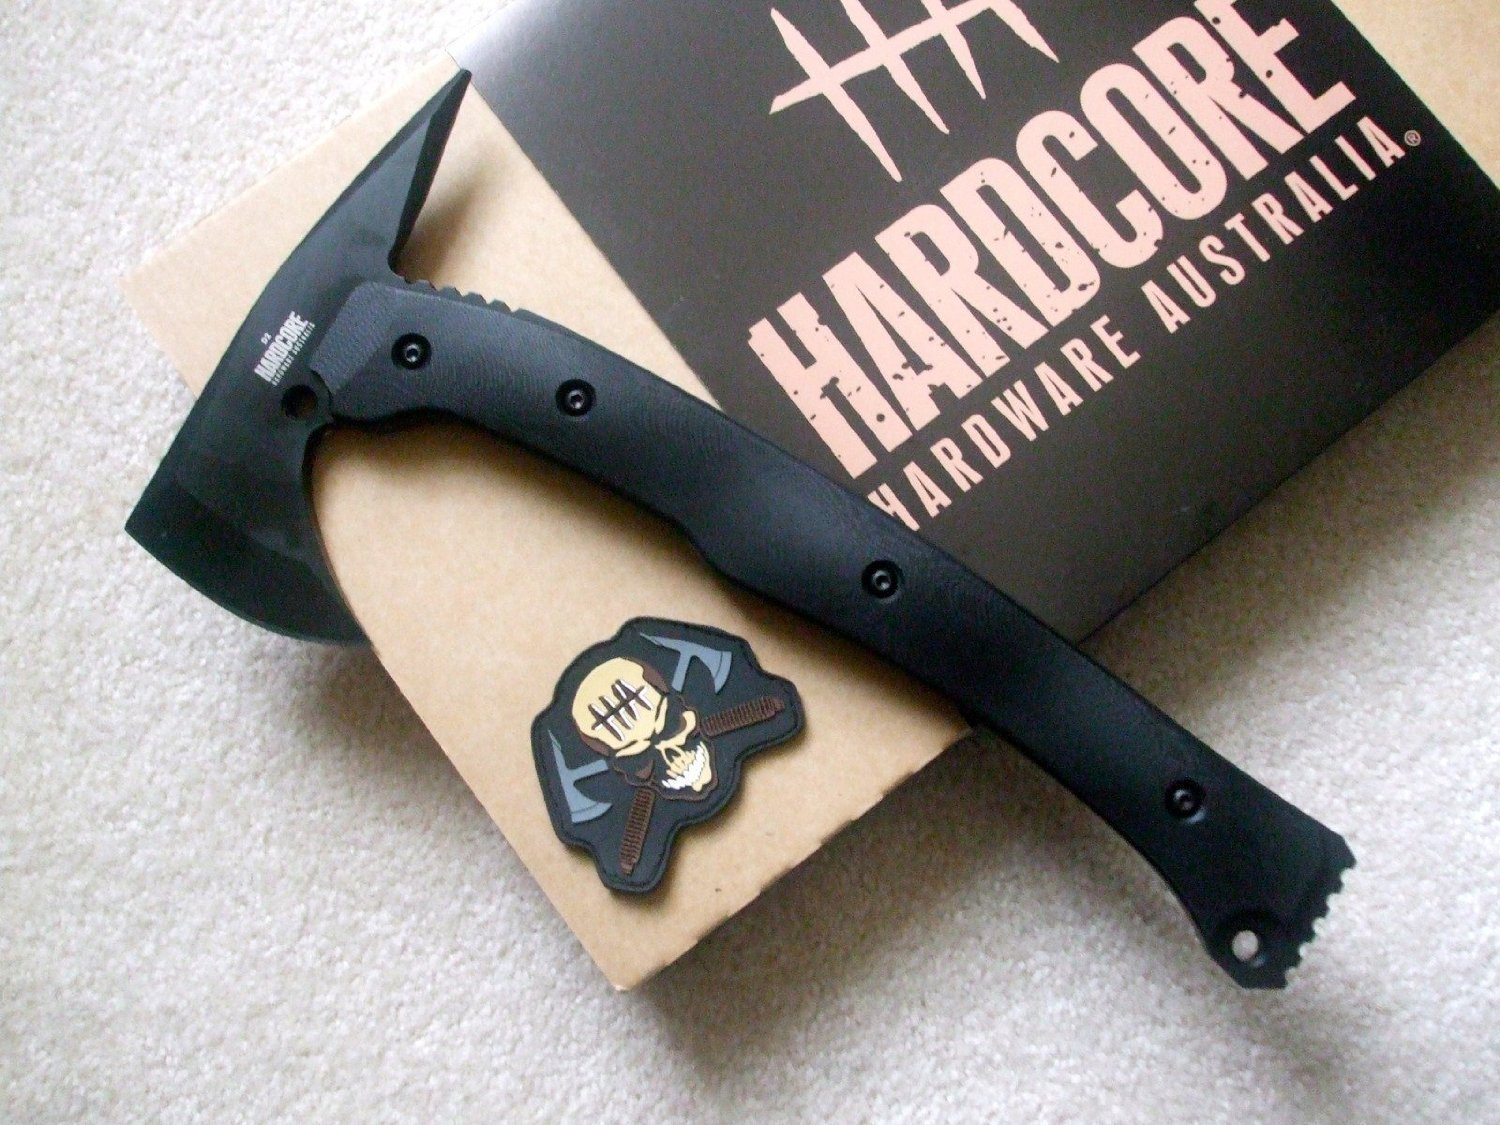 hardcore-hardware-australia-lft-01-tactical